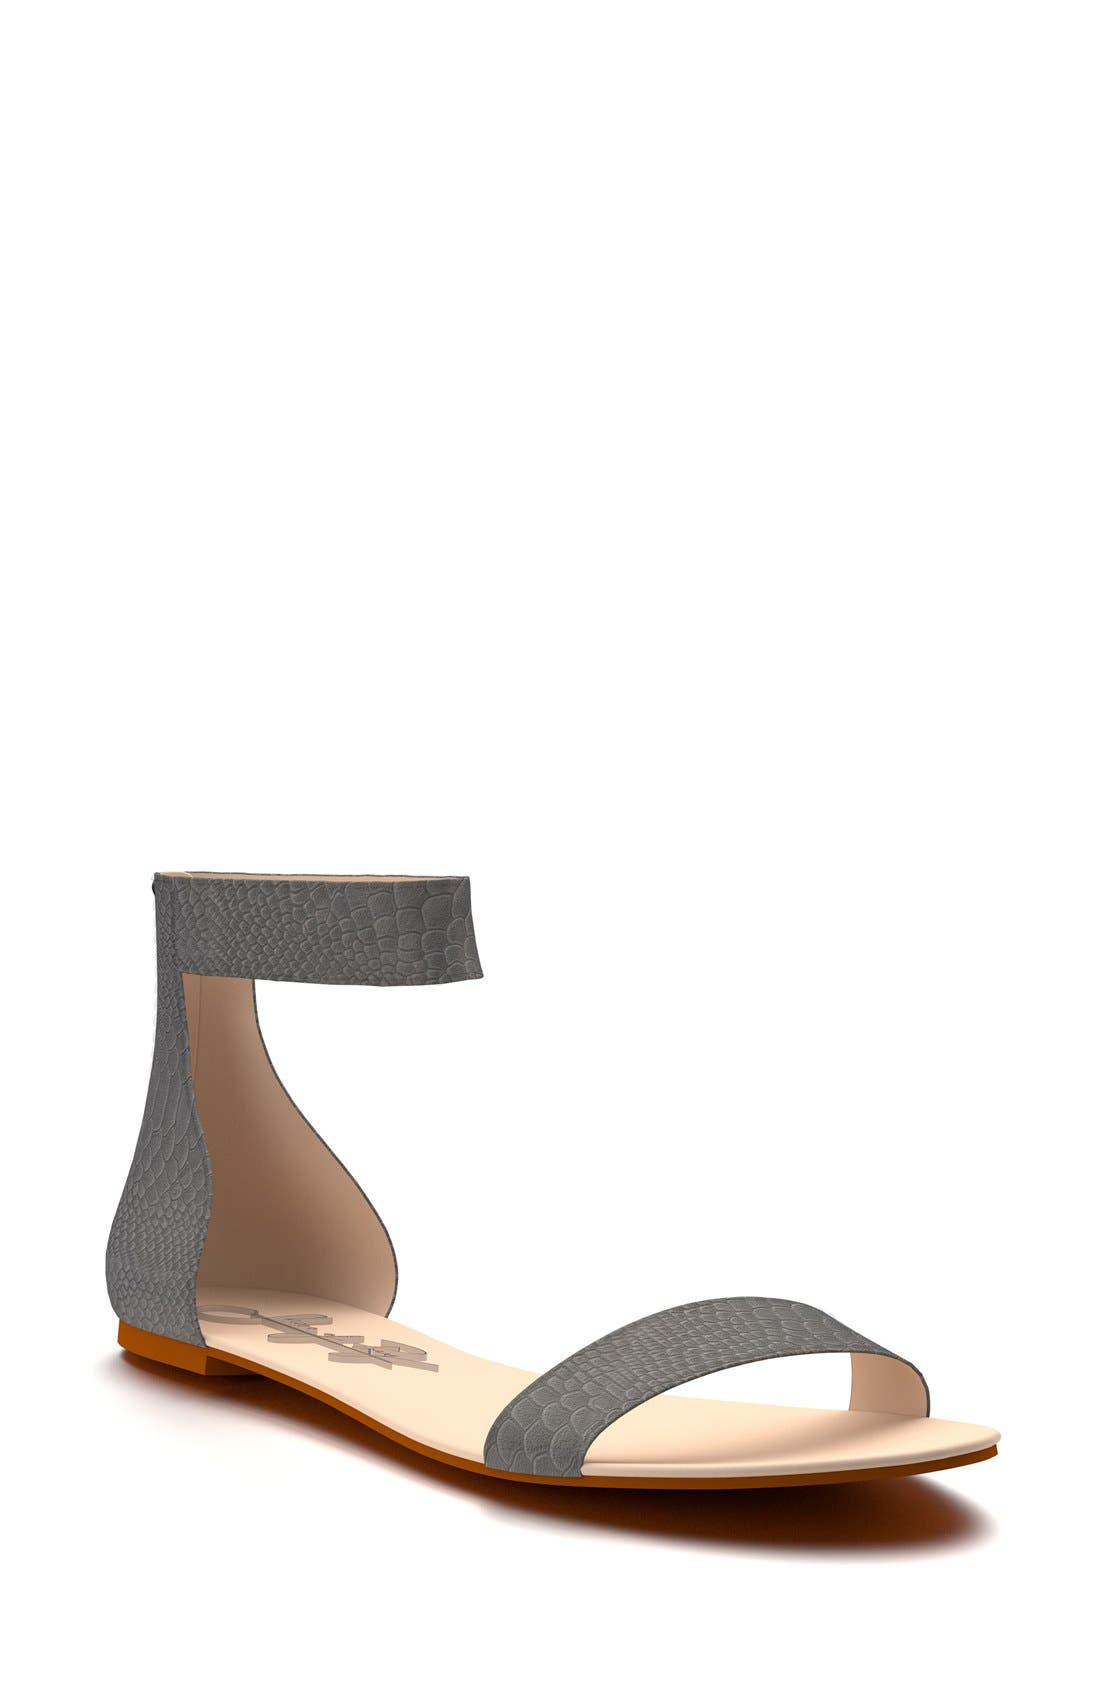 Shoes of Prey Ankle Strap Sandal (Women)